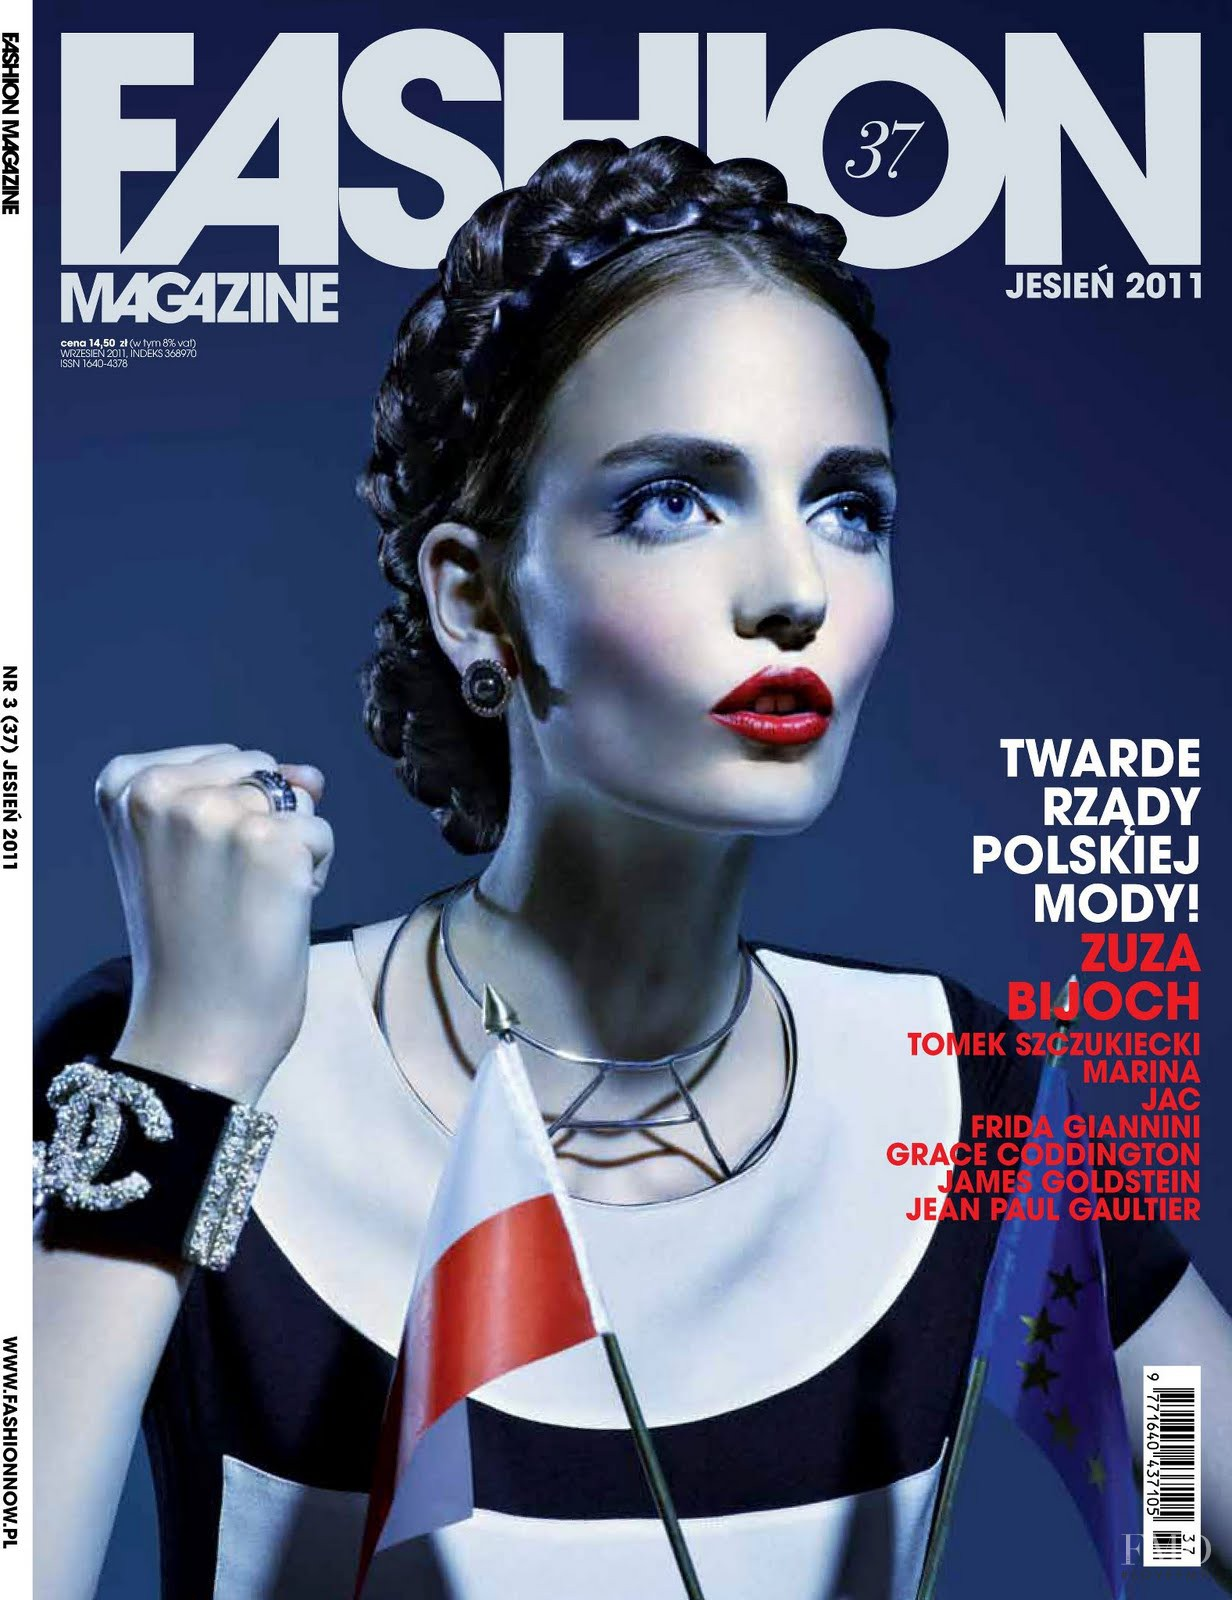 Cover Of Fashion Magazine With Zuzanna Bijoch, September